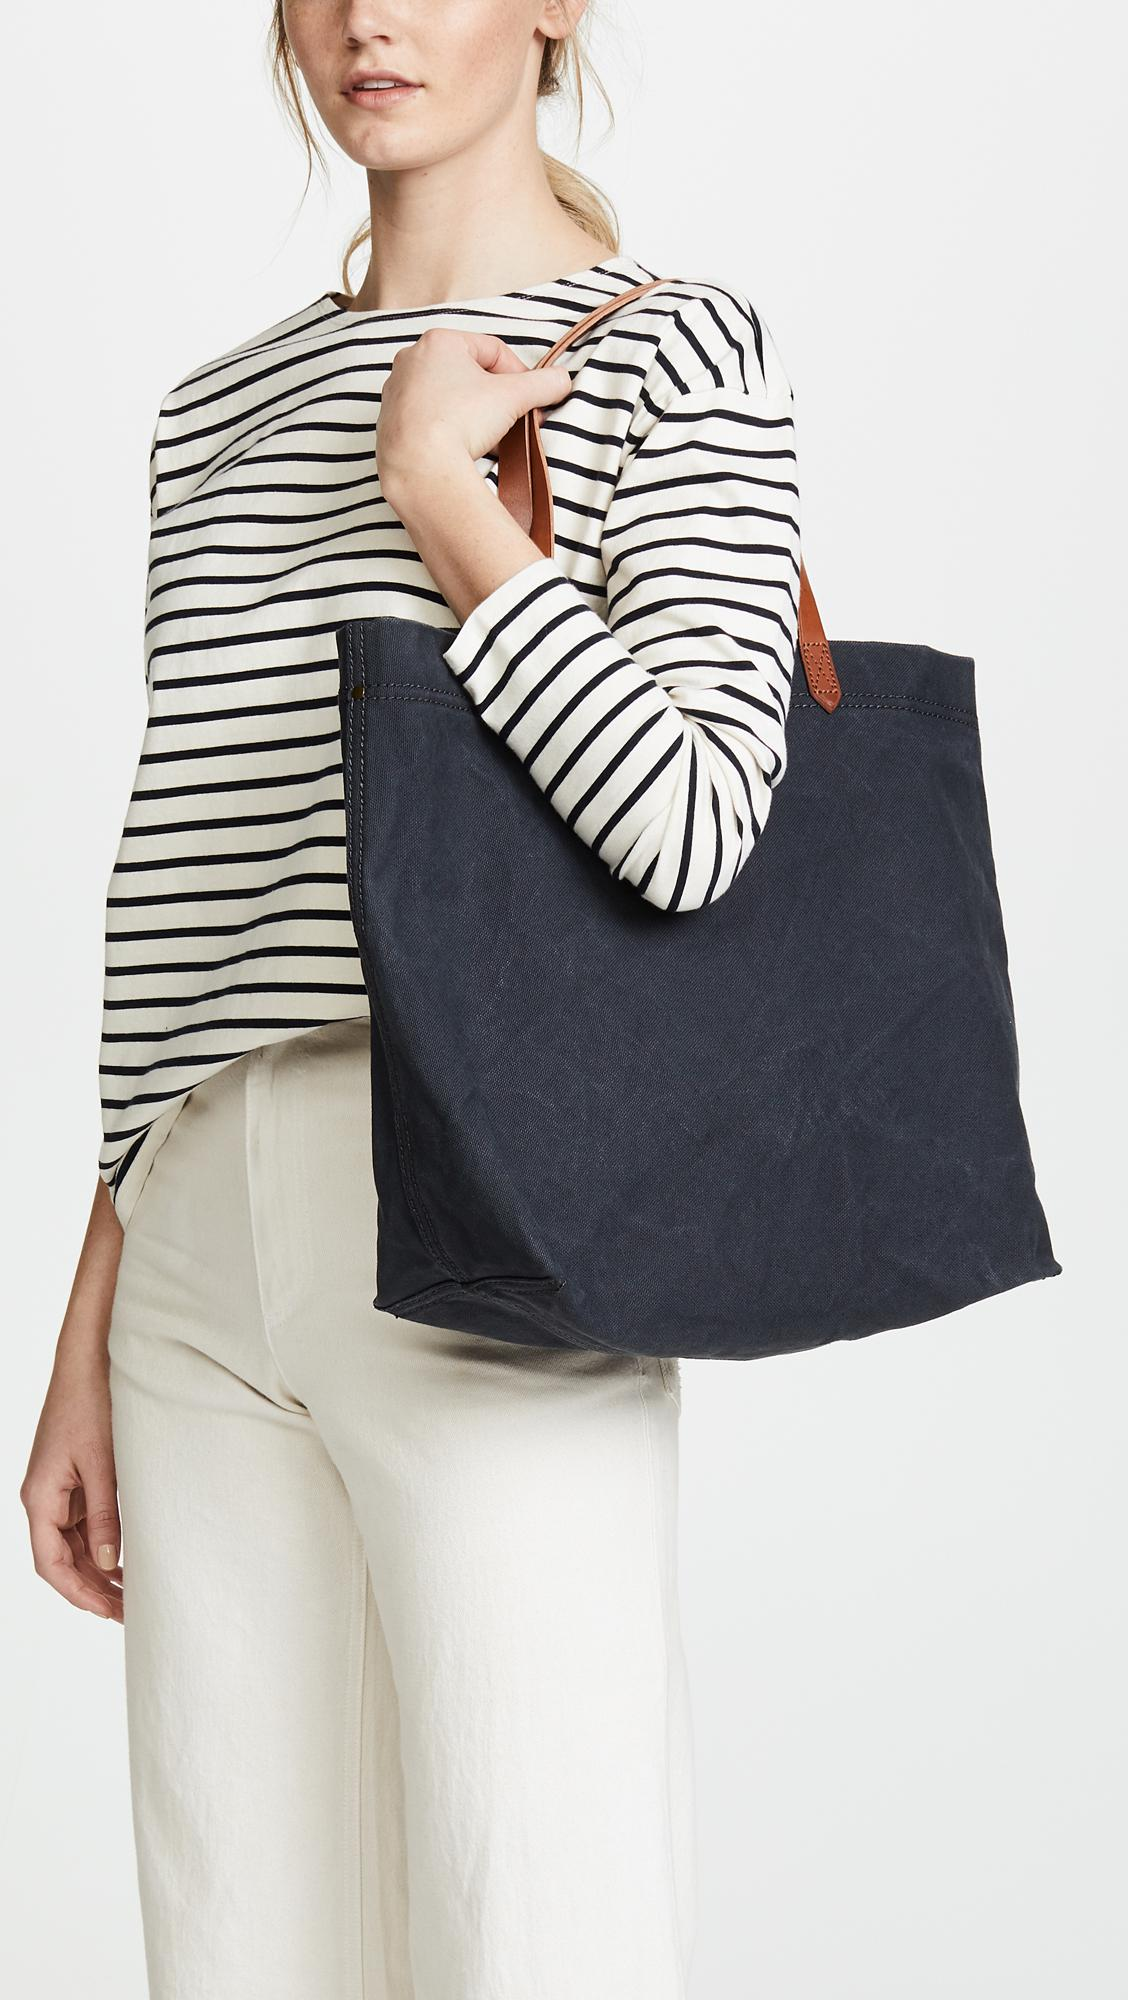 5f11b41d9 Madewell Heavy Canvas Transport Tote Bag in Black - Lyst